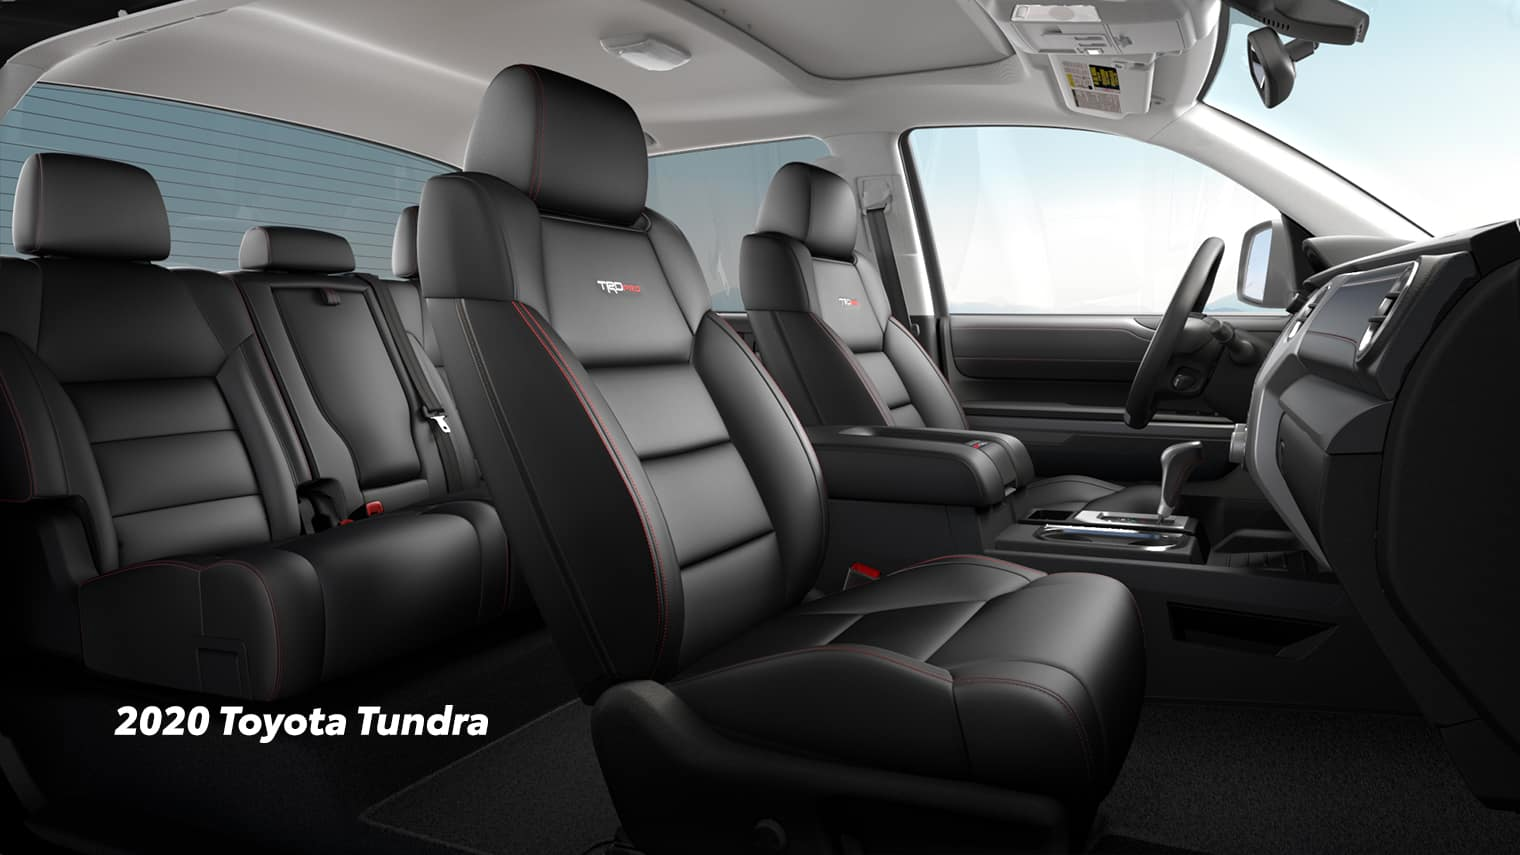 Comparison of the Toyota Tacoma vs. Tundra trucks at Lancaster Toyota of East Petersburg | The interior of 2020 Toyota Tundra